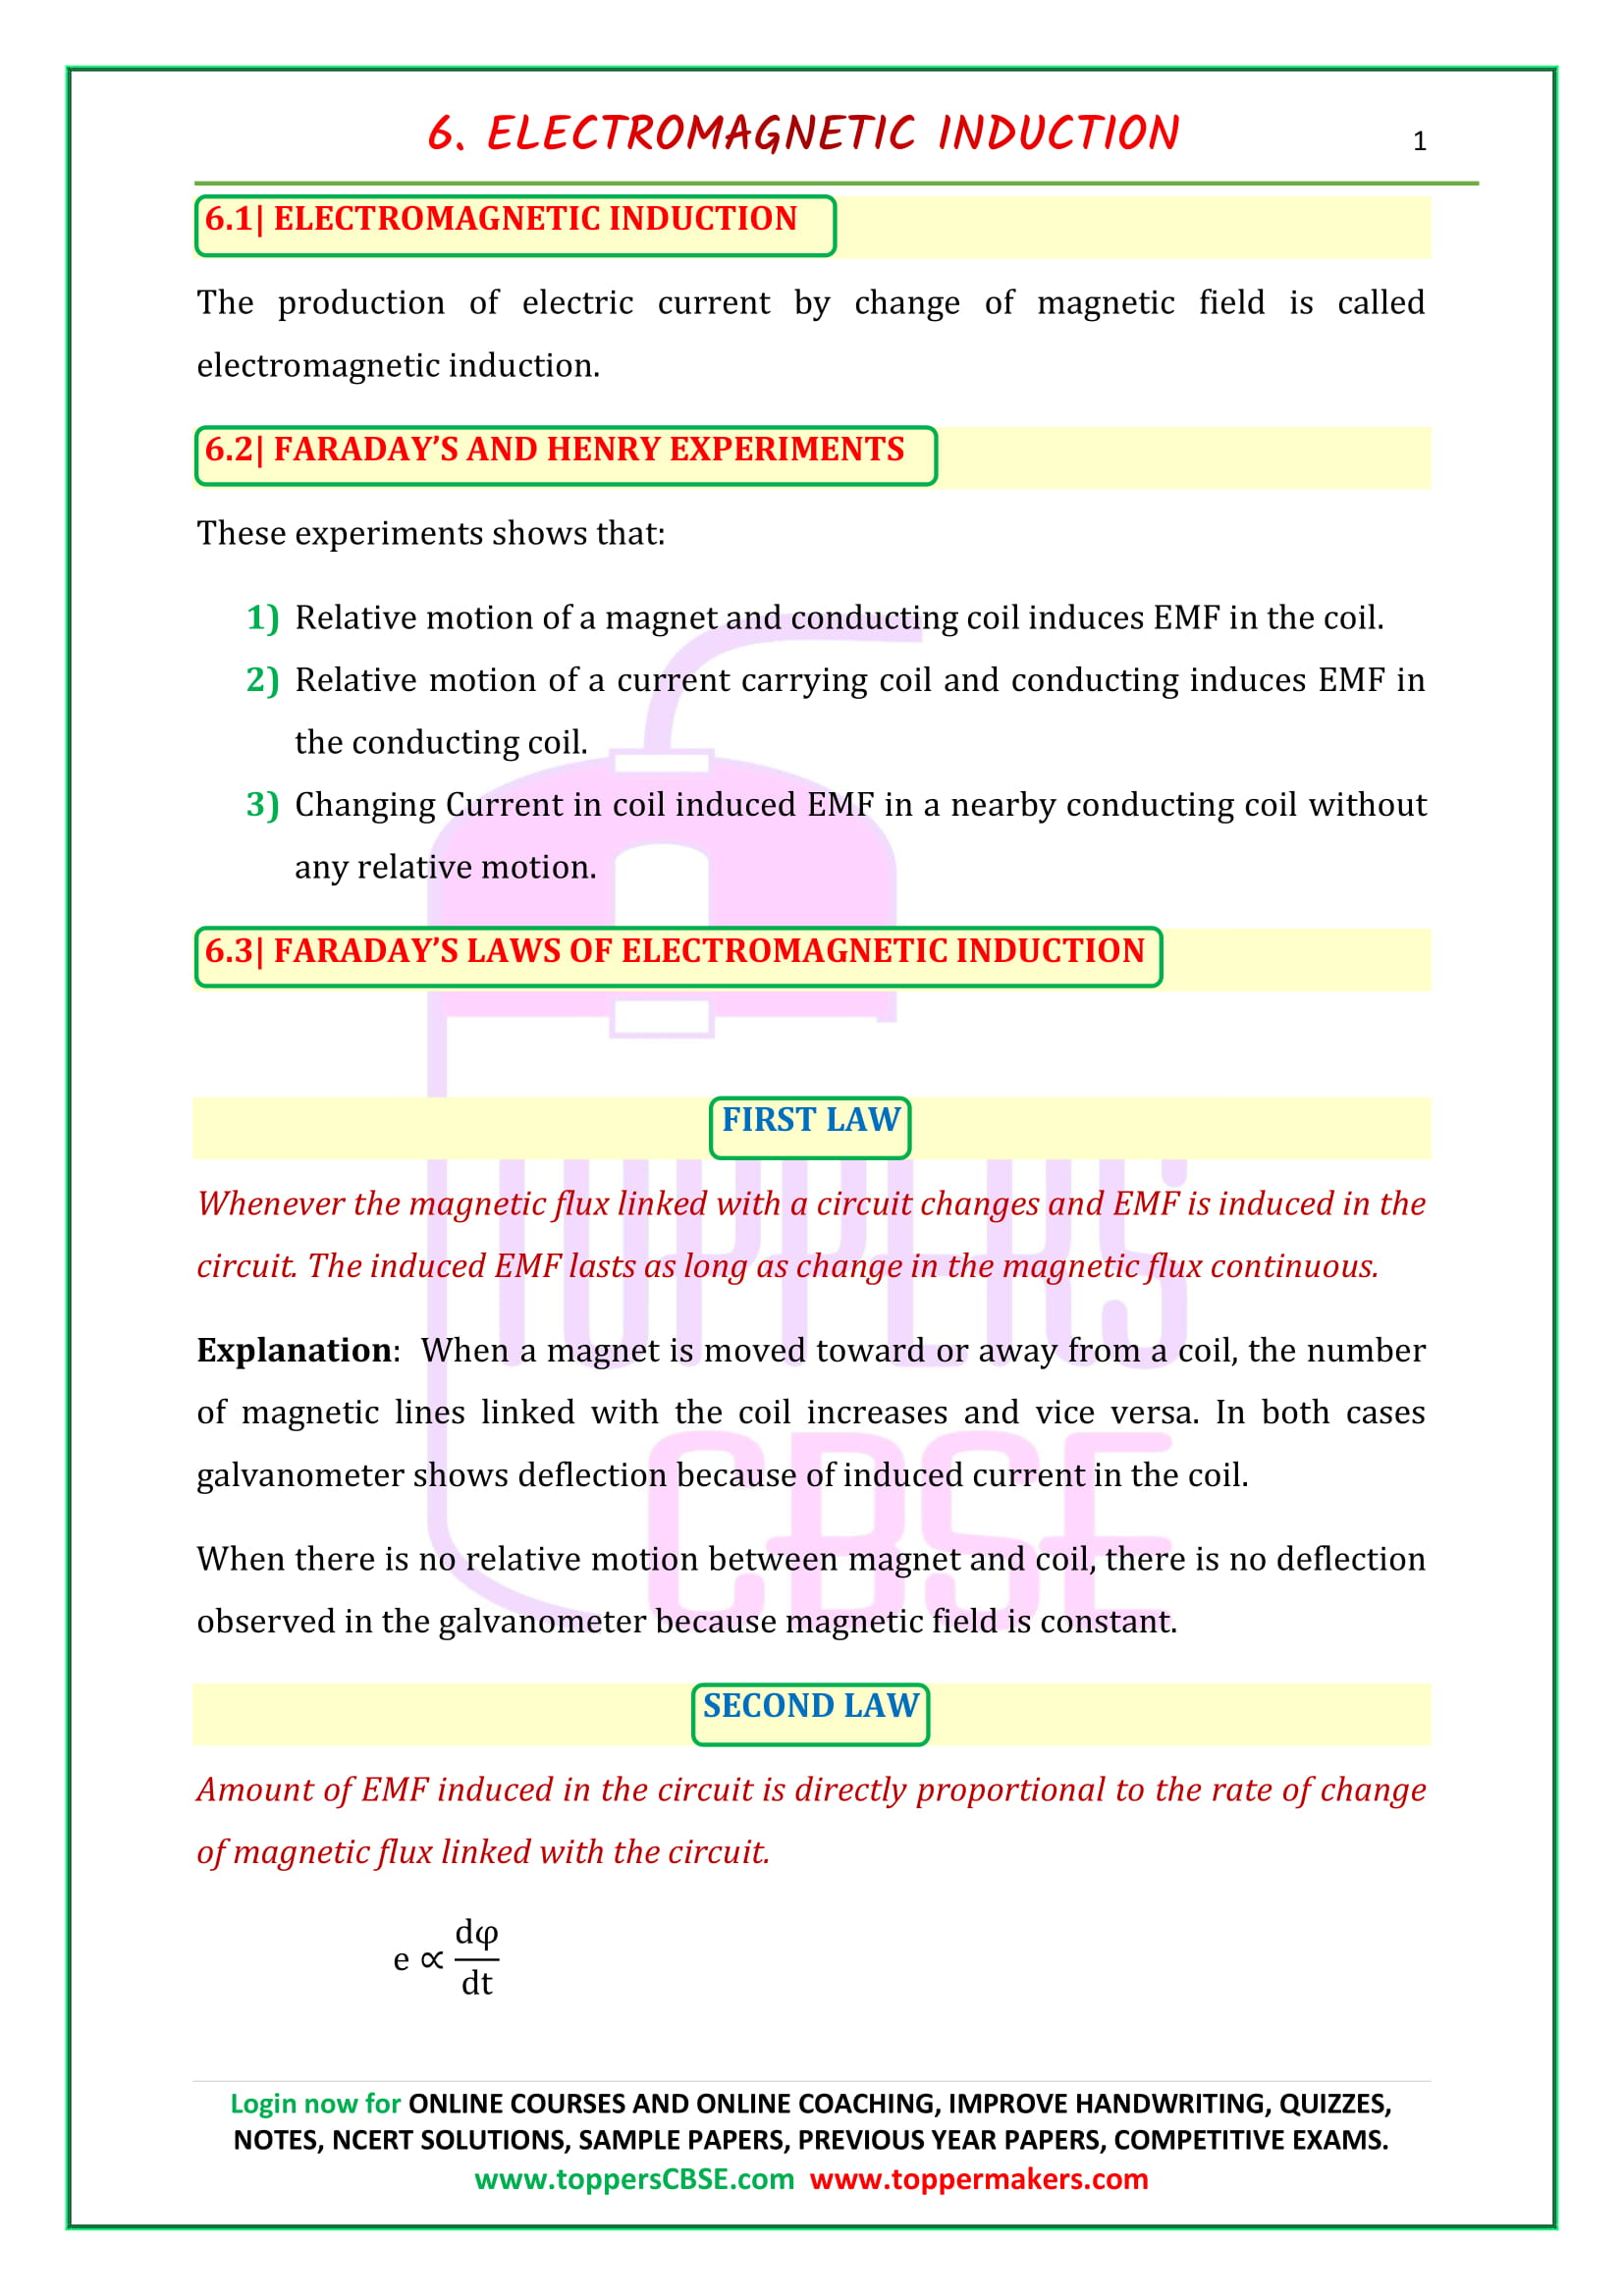 cbse class 12 physics notes chapter 6 notes